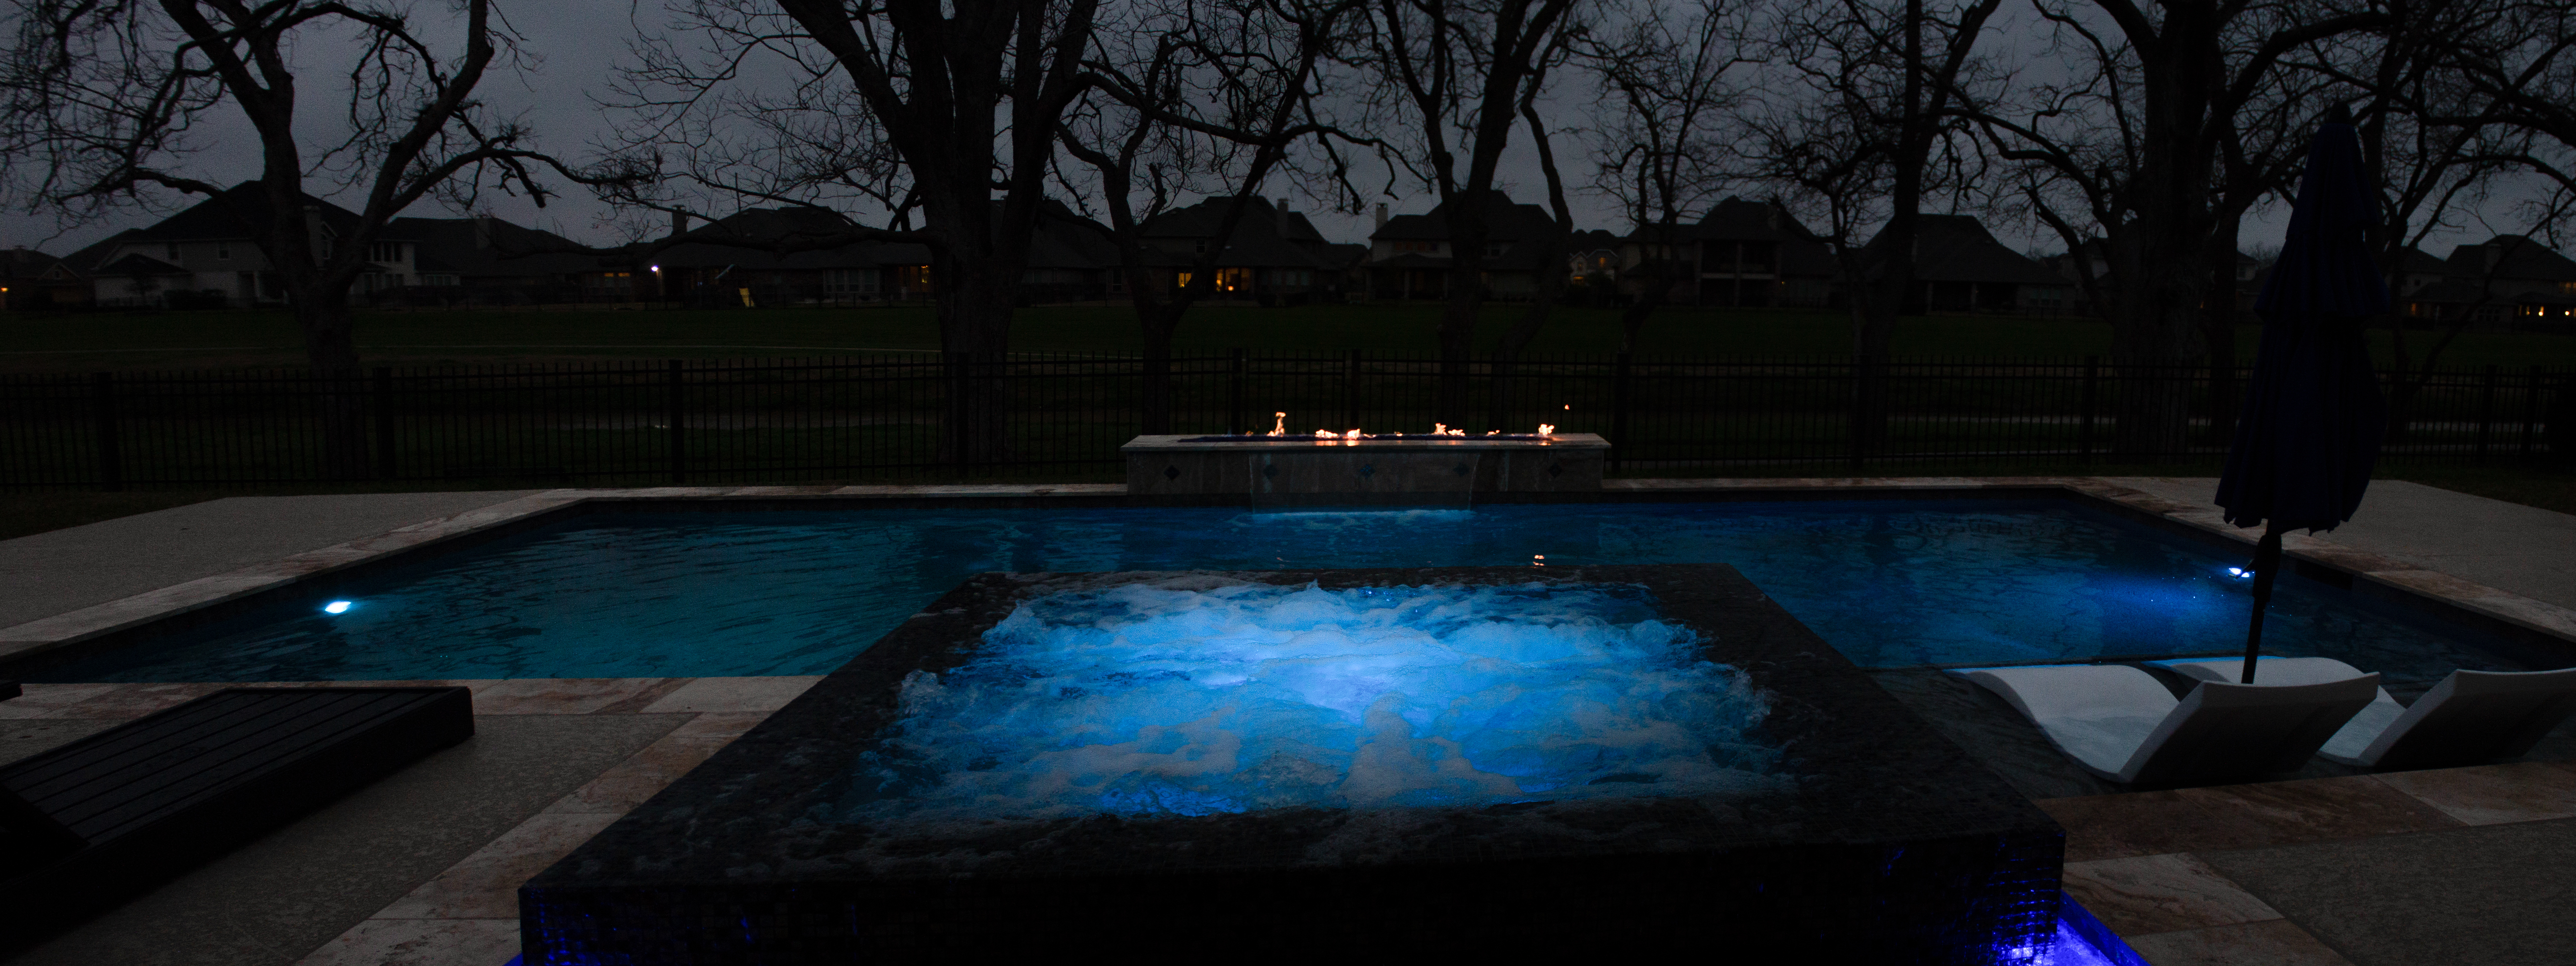 The Best swimming pool lights for your Phoenix Pool 2